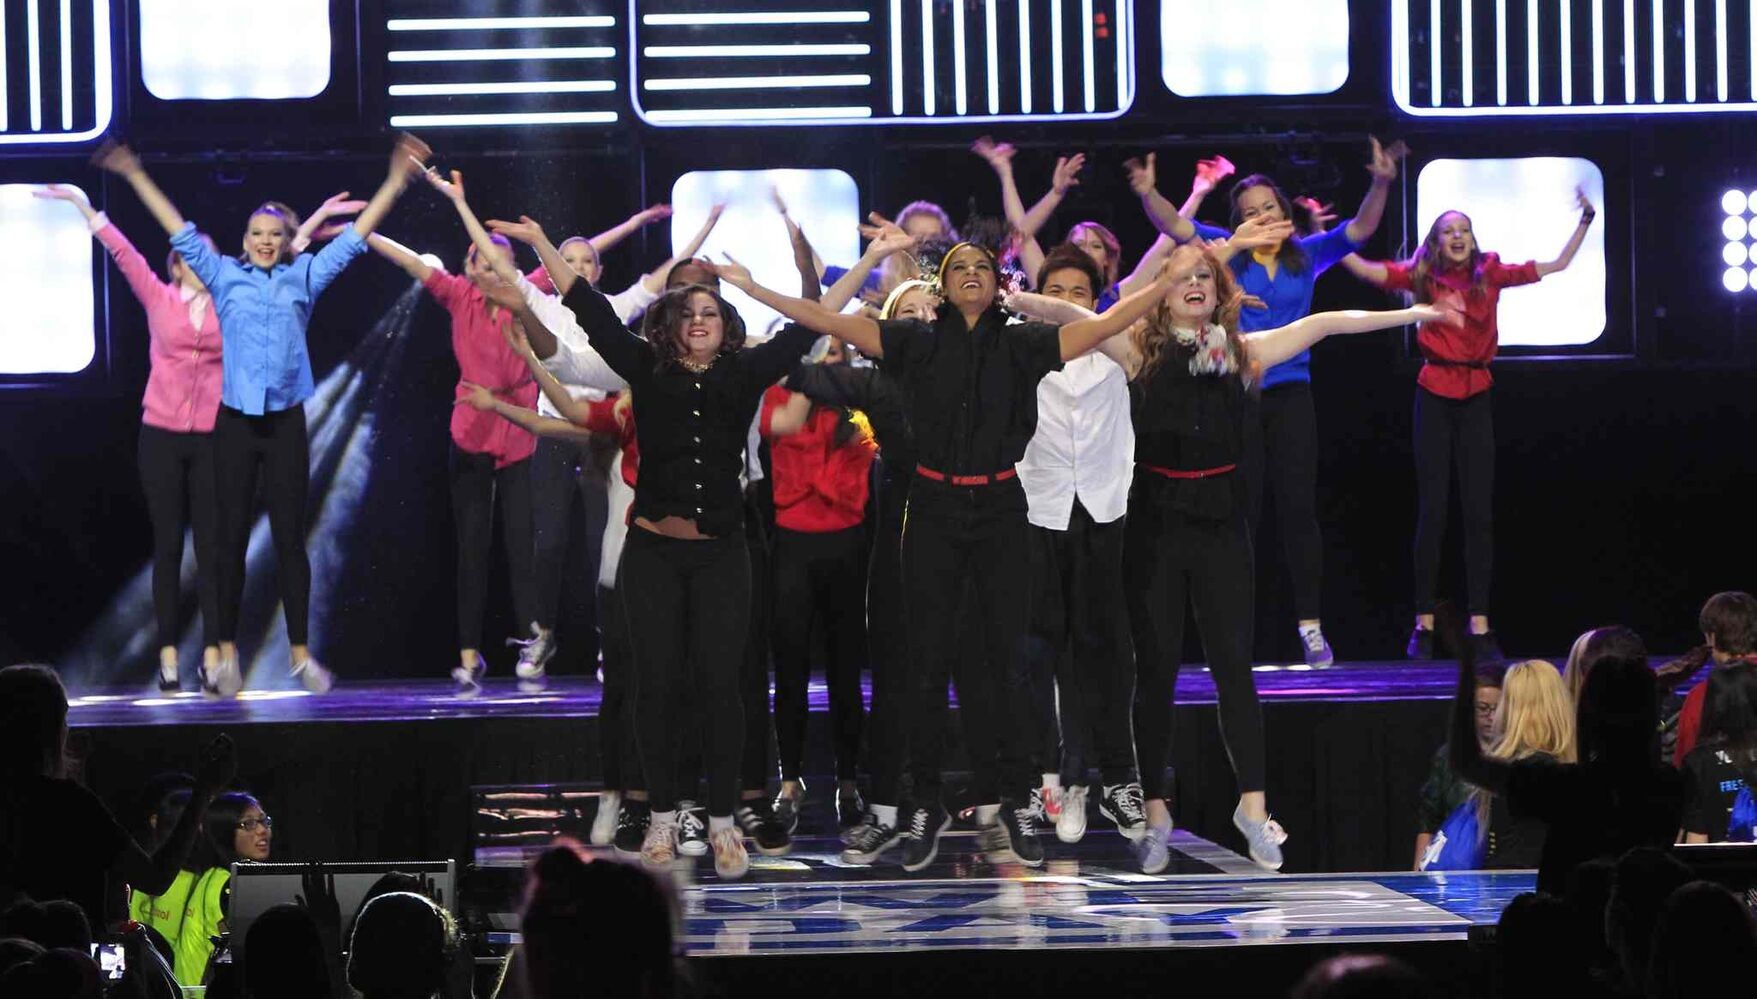 The Winnipeg Dance Force opens We Day. (Wayne Glowacki / Winnipeg Free Press)